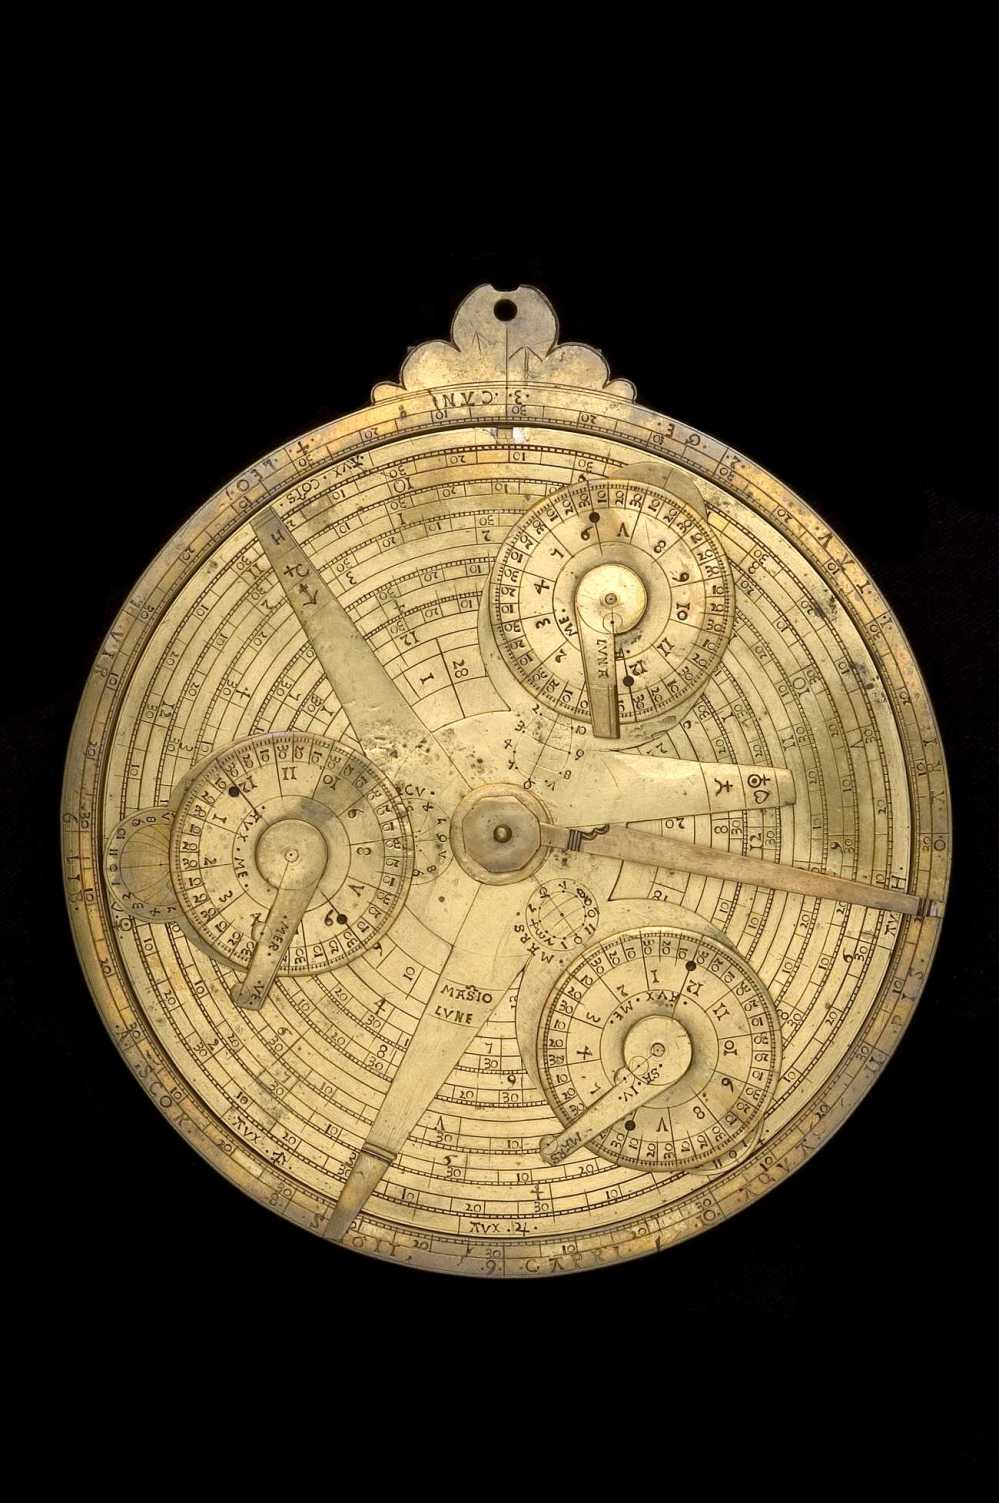 preview image for Astrolabe and Equatorium, Southern France or Northern Italy, Late 15th Century